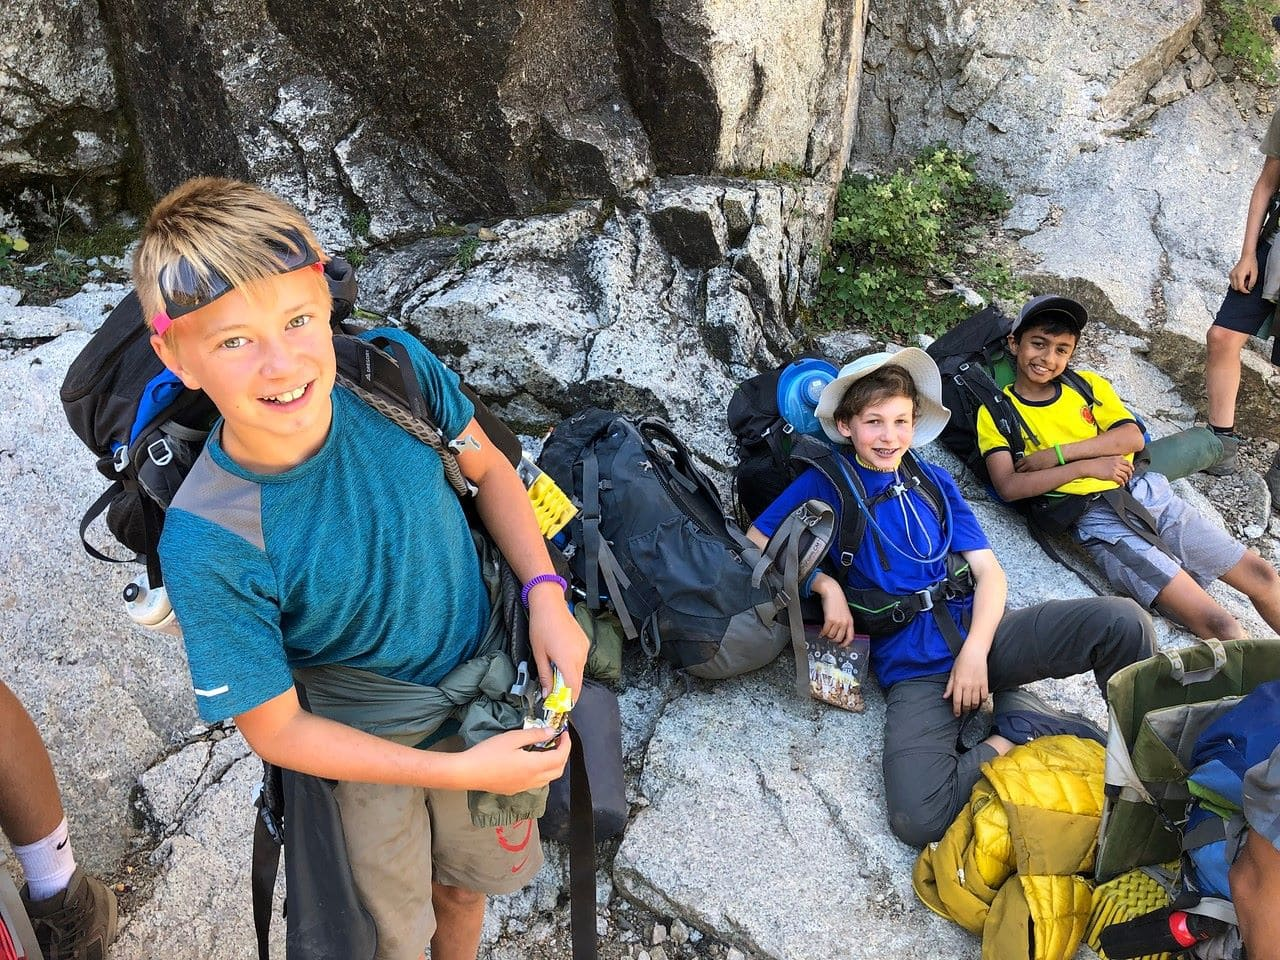 Three friends take a quick break in the shade while hiking in the high sierra this summer on their adventure trip